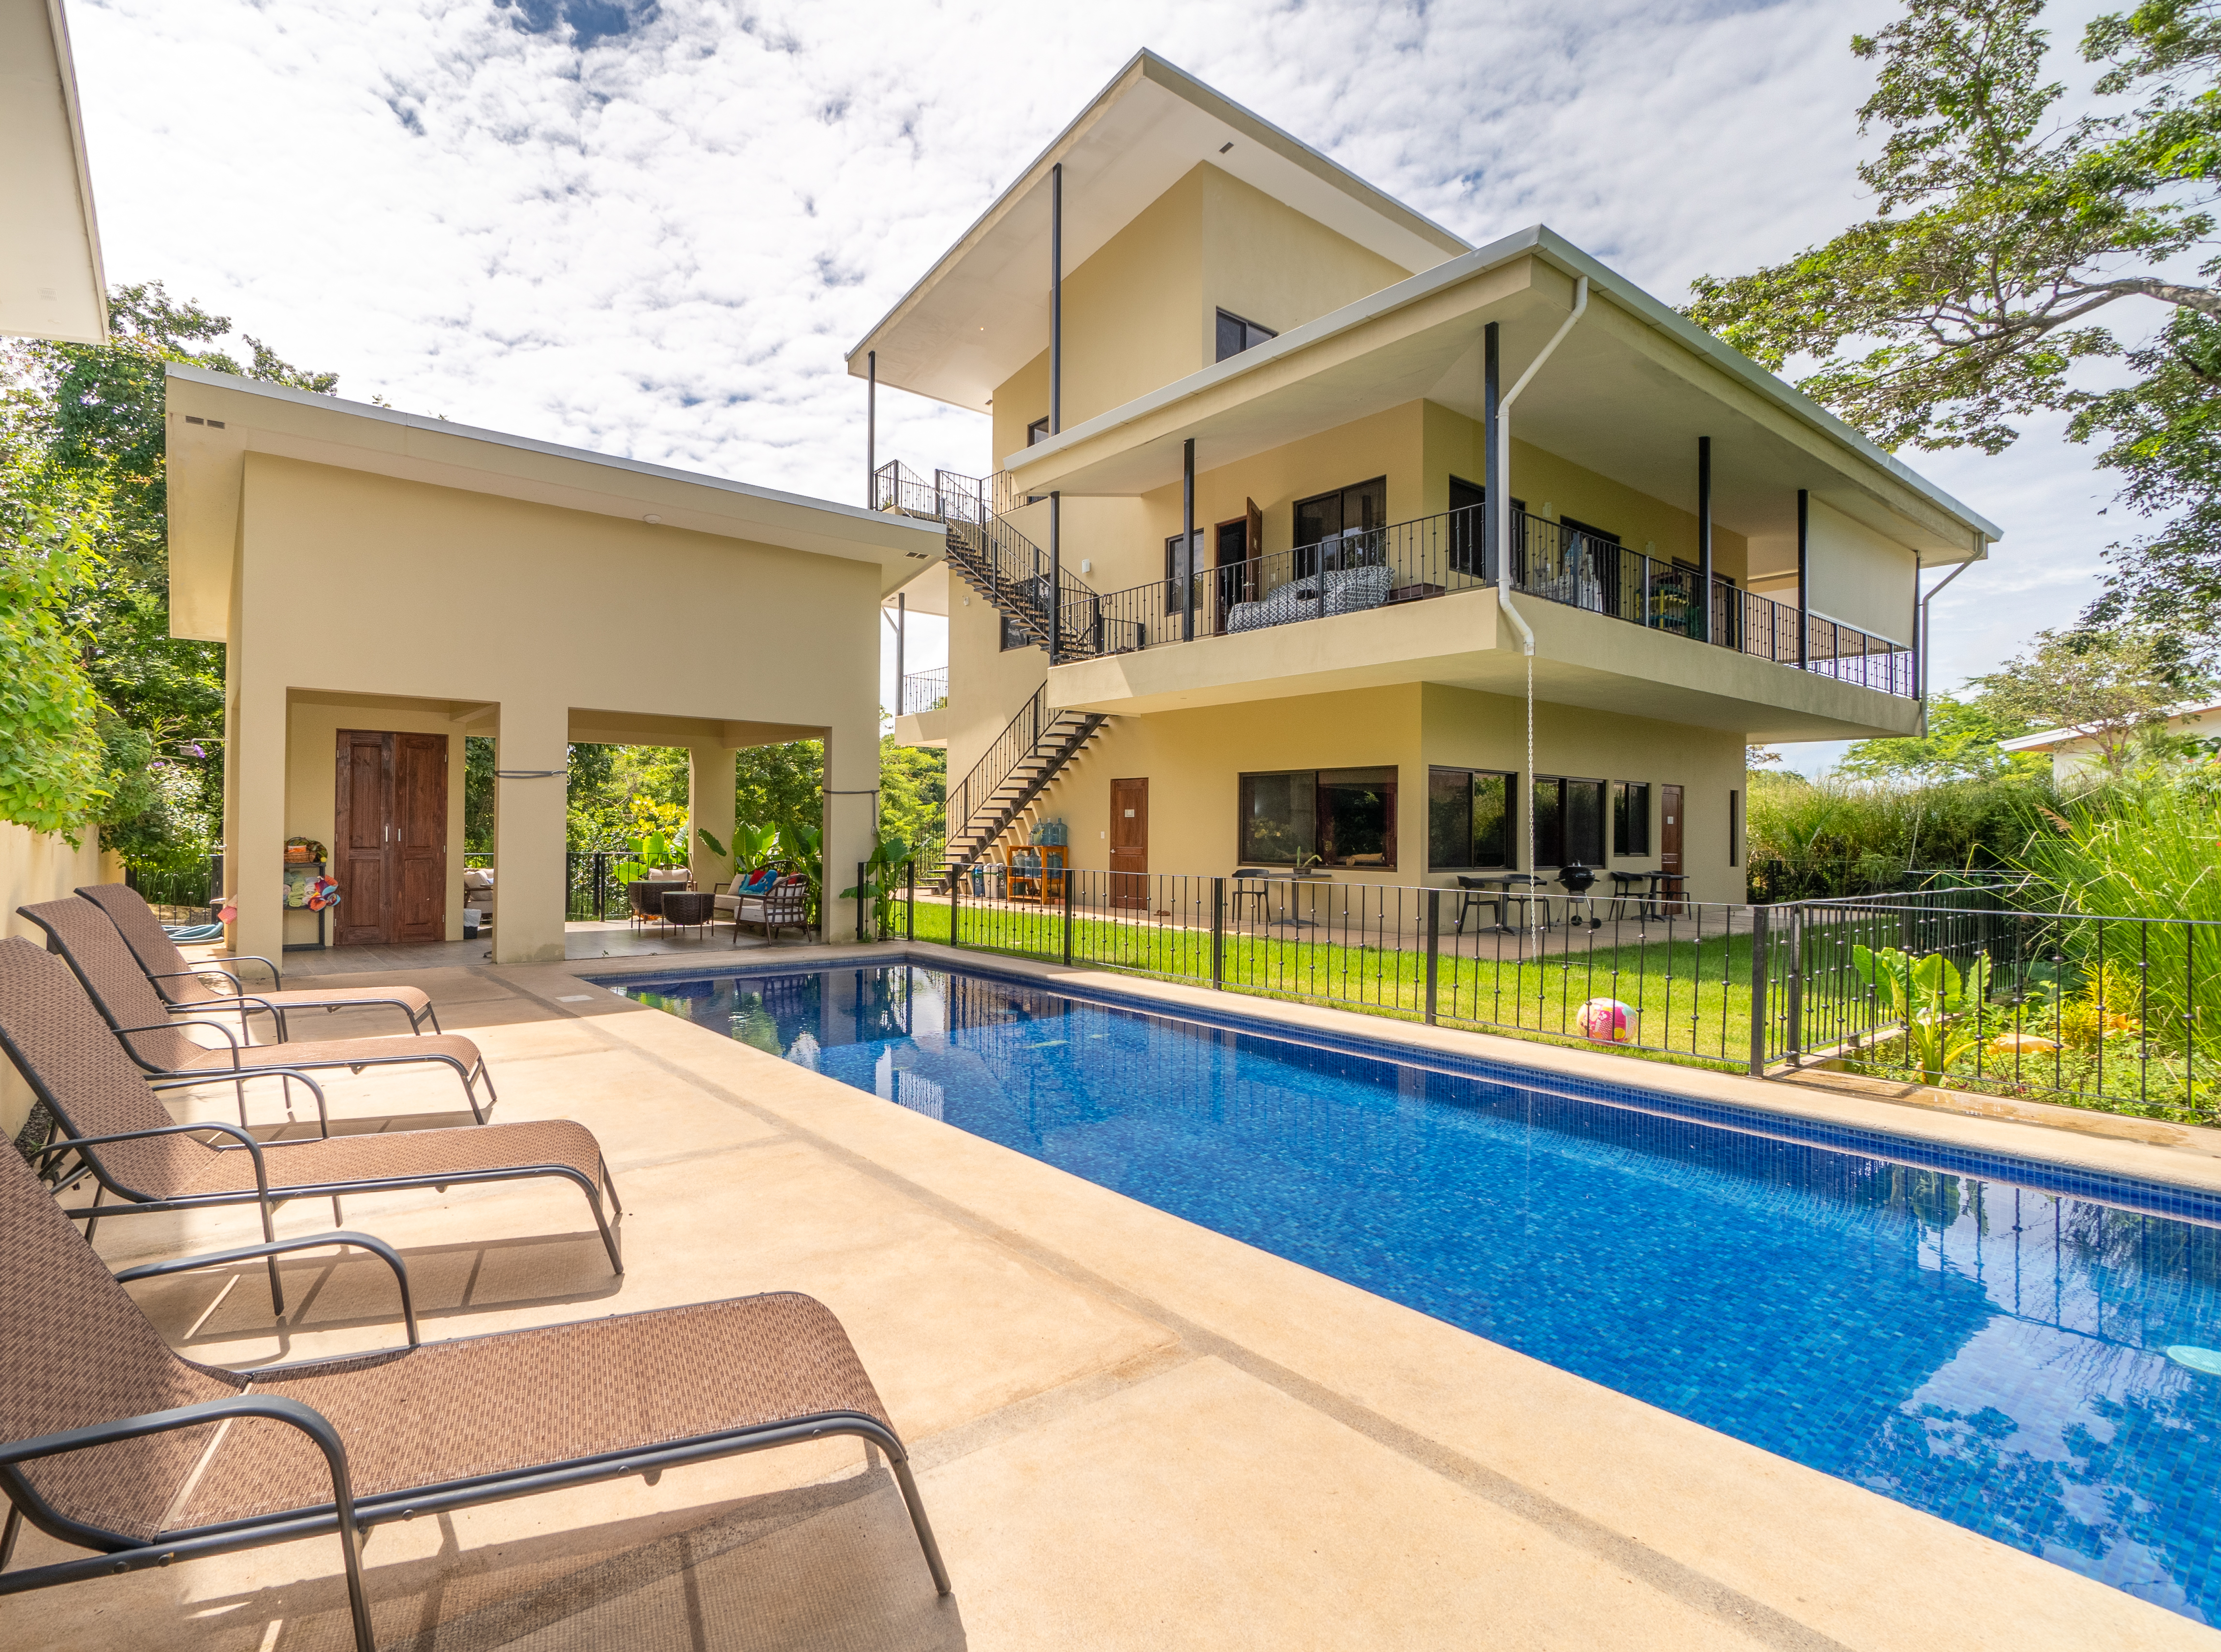 Enjoy a relaxing Costa Rican Vacation at The Lanktuary